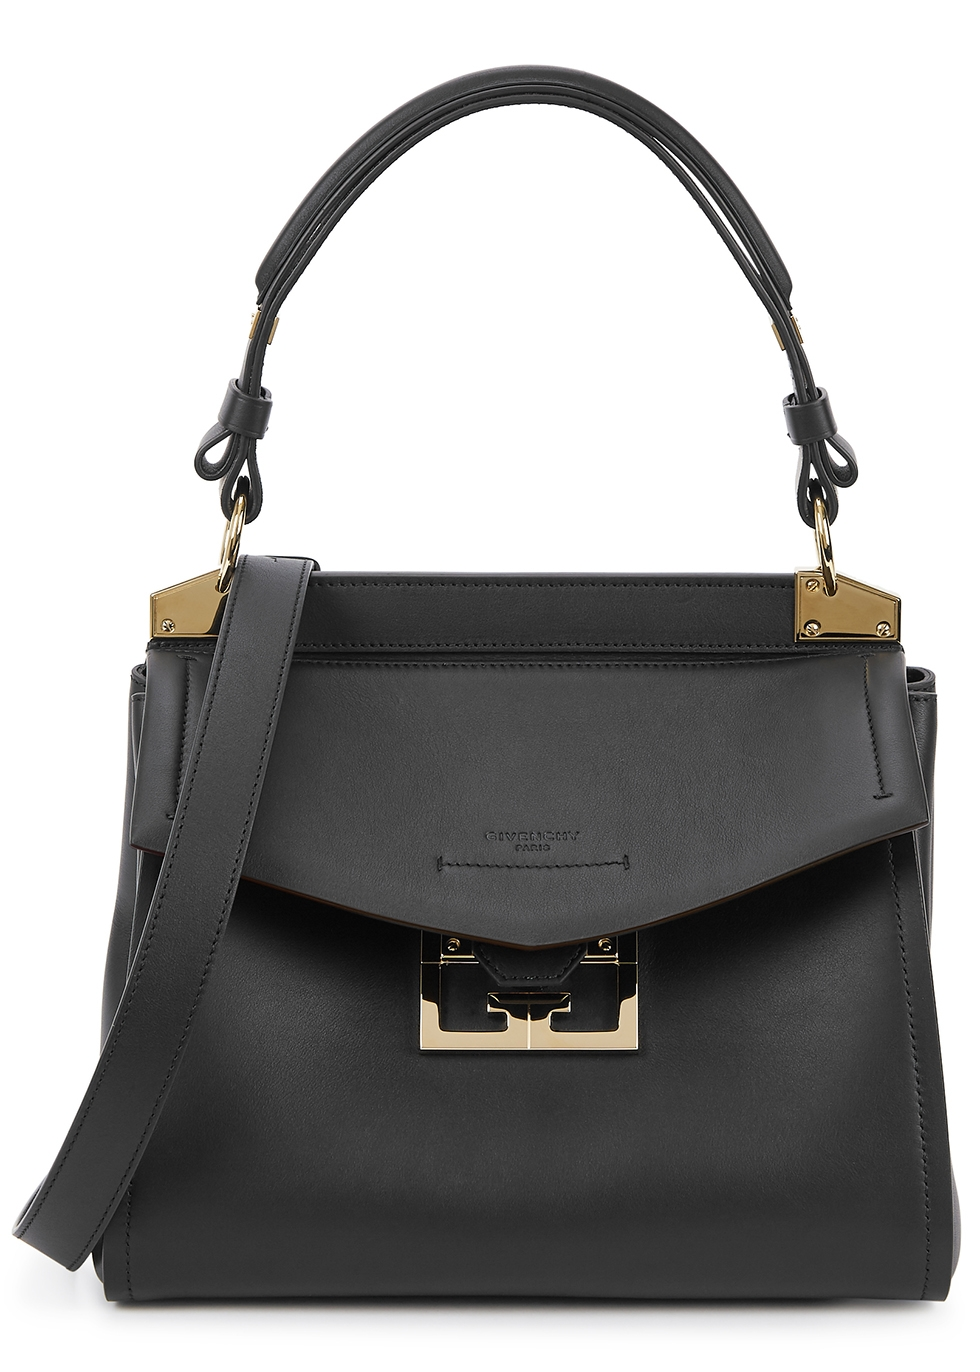 Mystic small black leather top handle bag